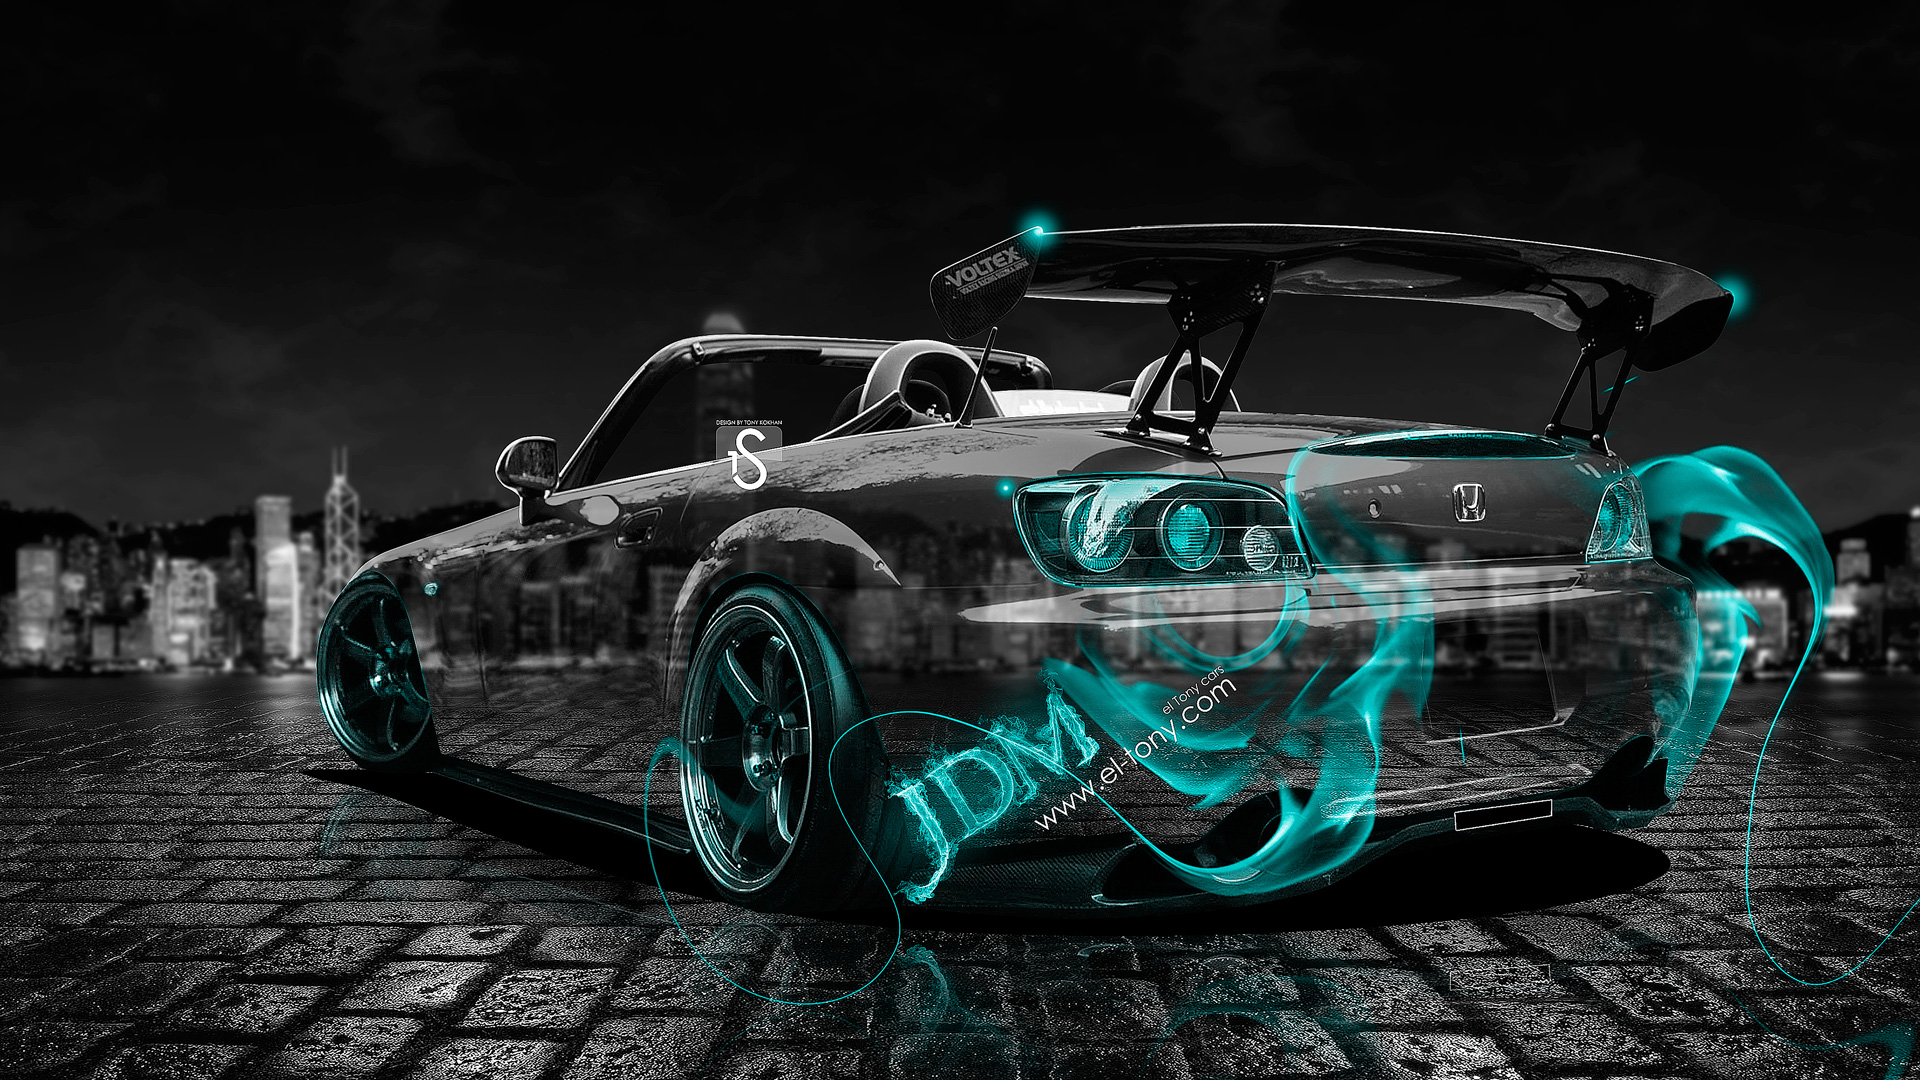 Honda S2000 JDM Turquoise Fire Crystal Car 2013 .